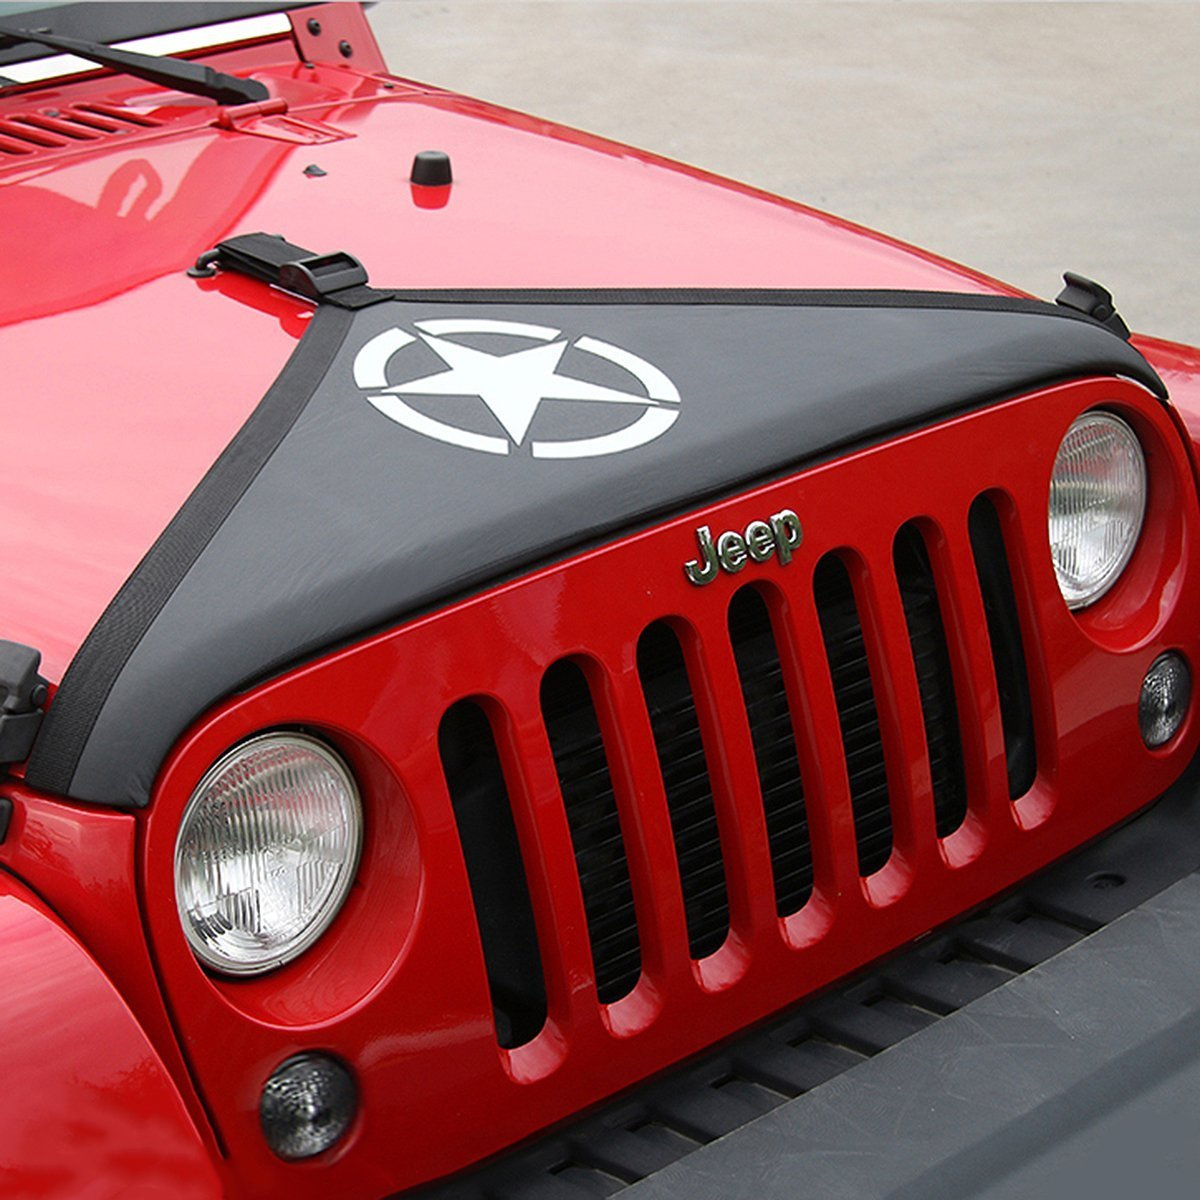 Car Canvas Front Hood Cover Kit For Jeep Wrangler 07-17